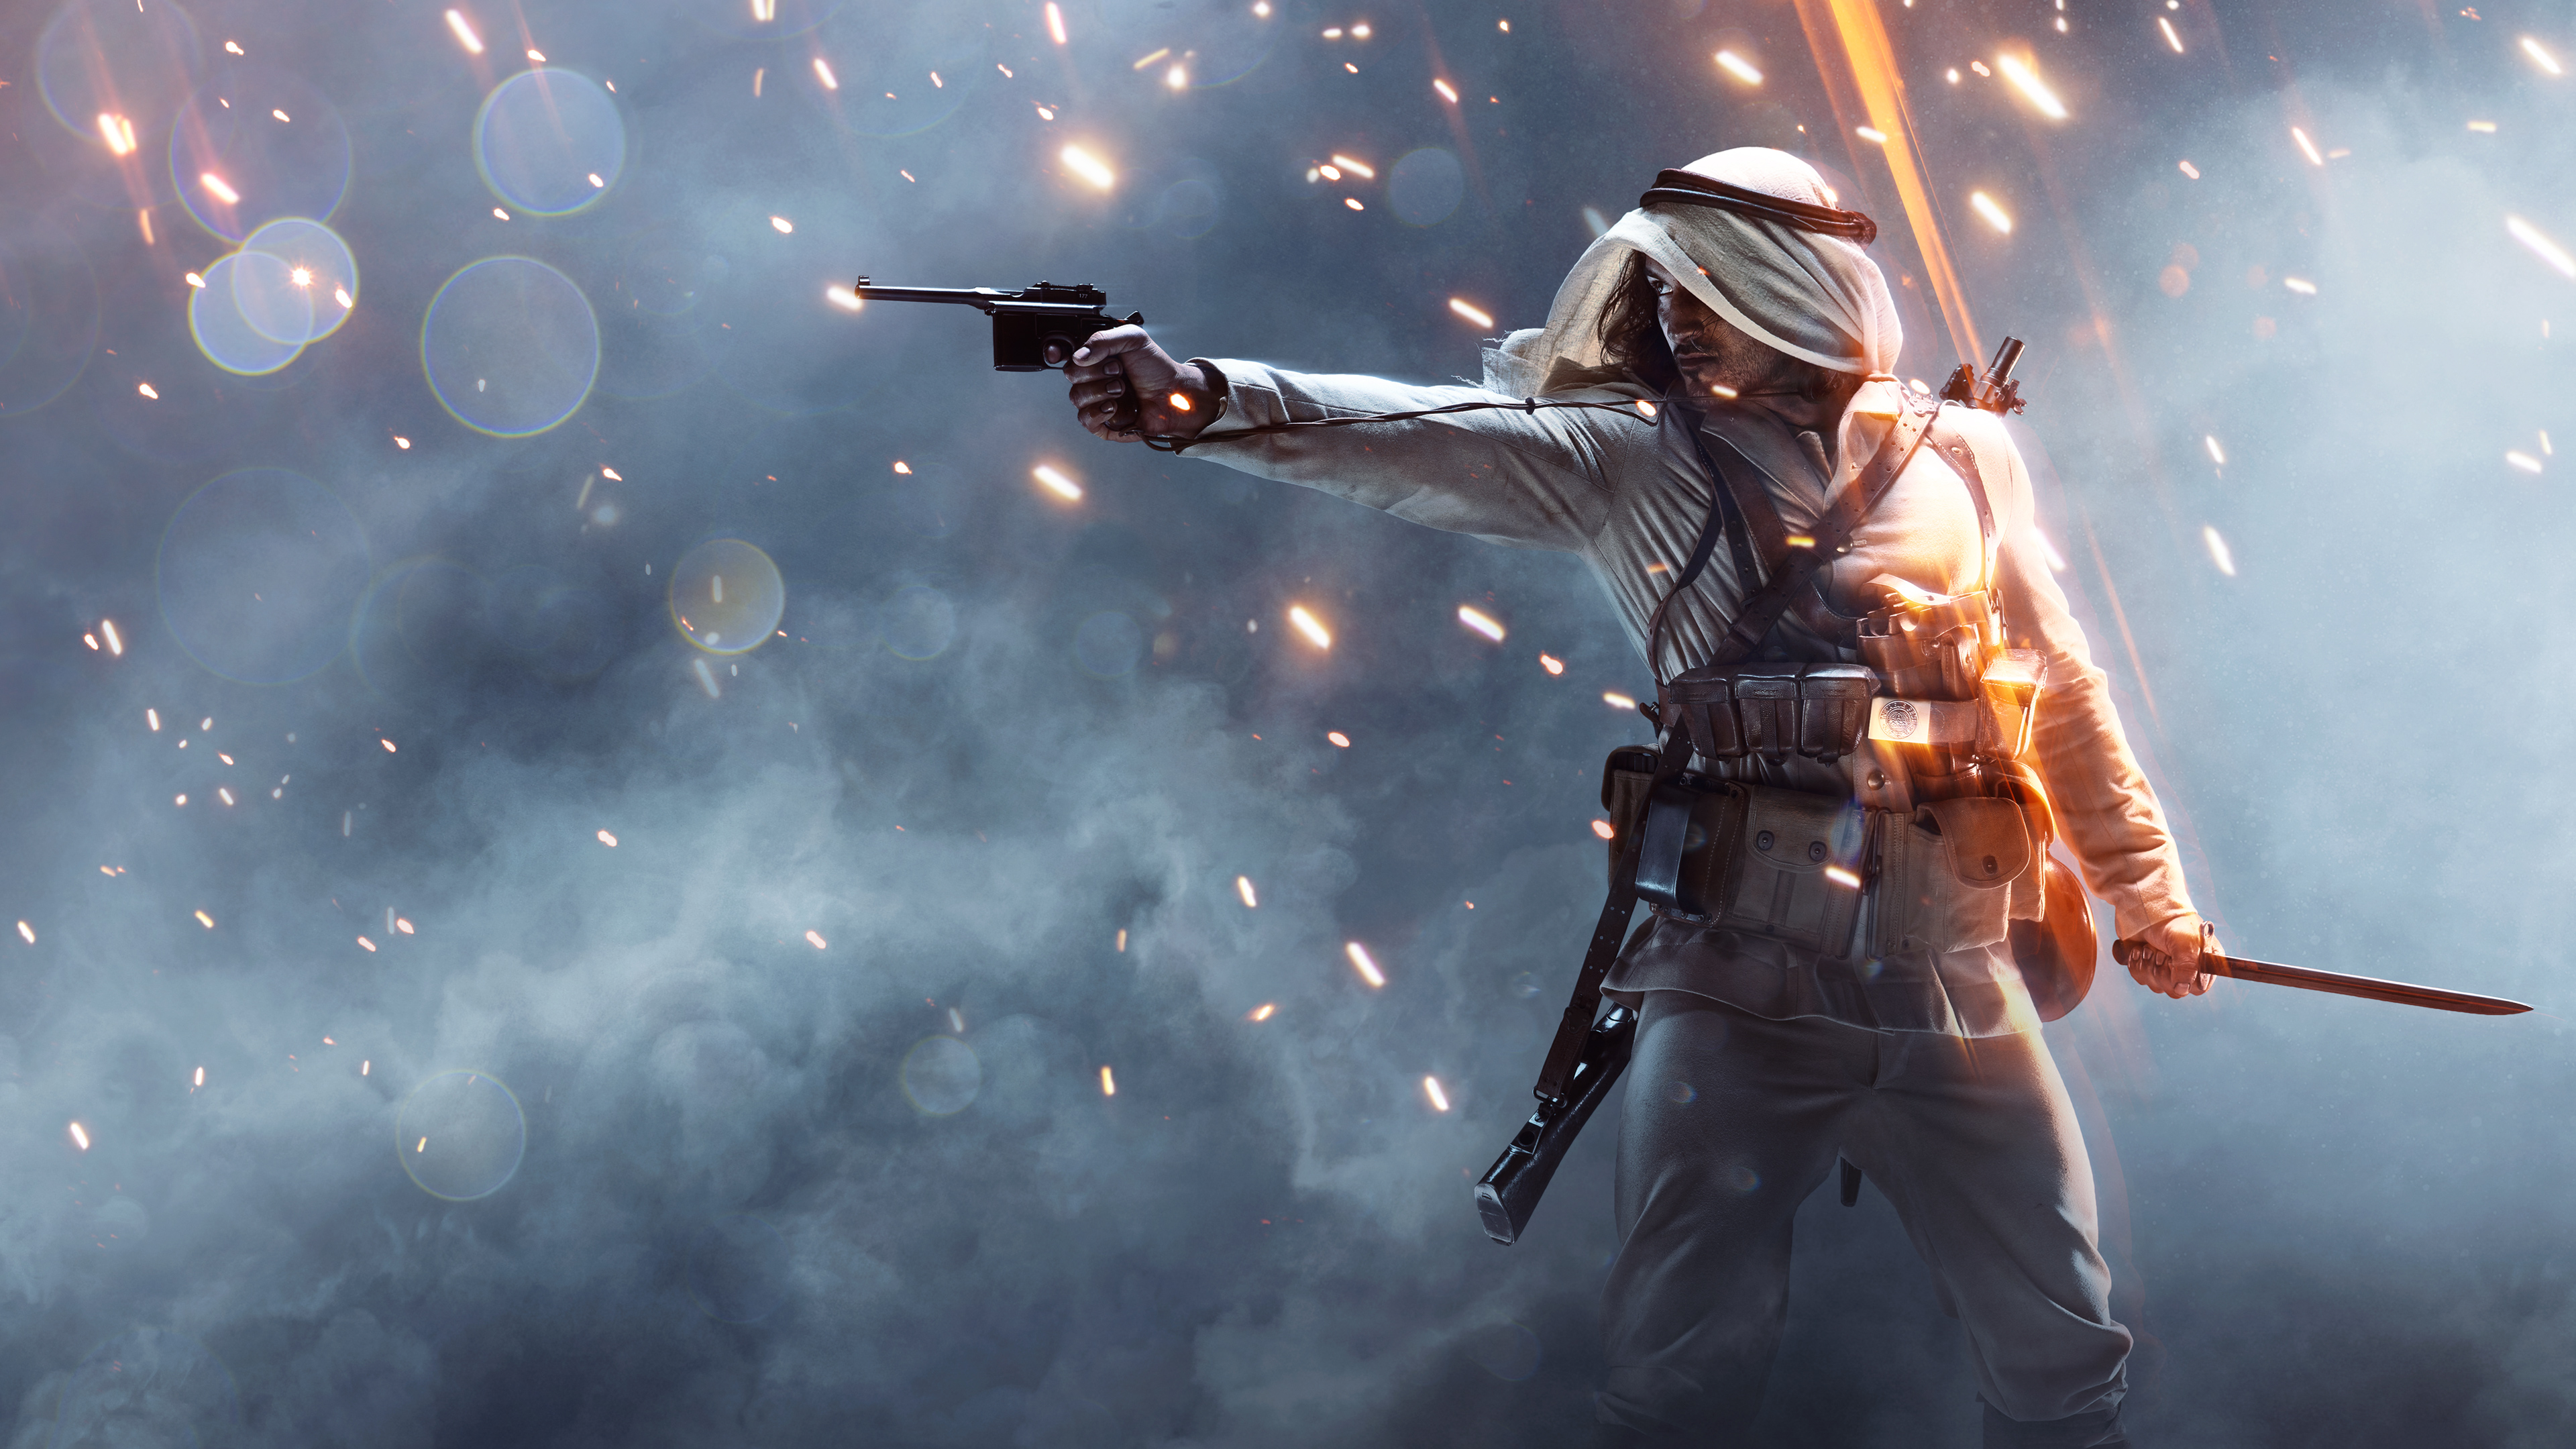 Wallpaper 4k Battlefield 1 4k 2018 2018 Games Wallpapers 4k Wallpapers Battlefield 1 Wallpapers Games Wallpapers Hd Wallpapers Pc Games Wallpapers Ps Games Wallpapers Xbox Games Wallpapers